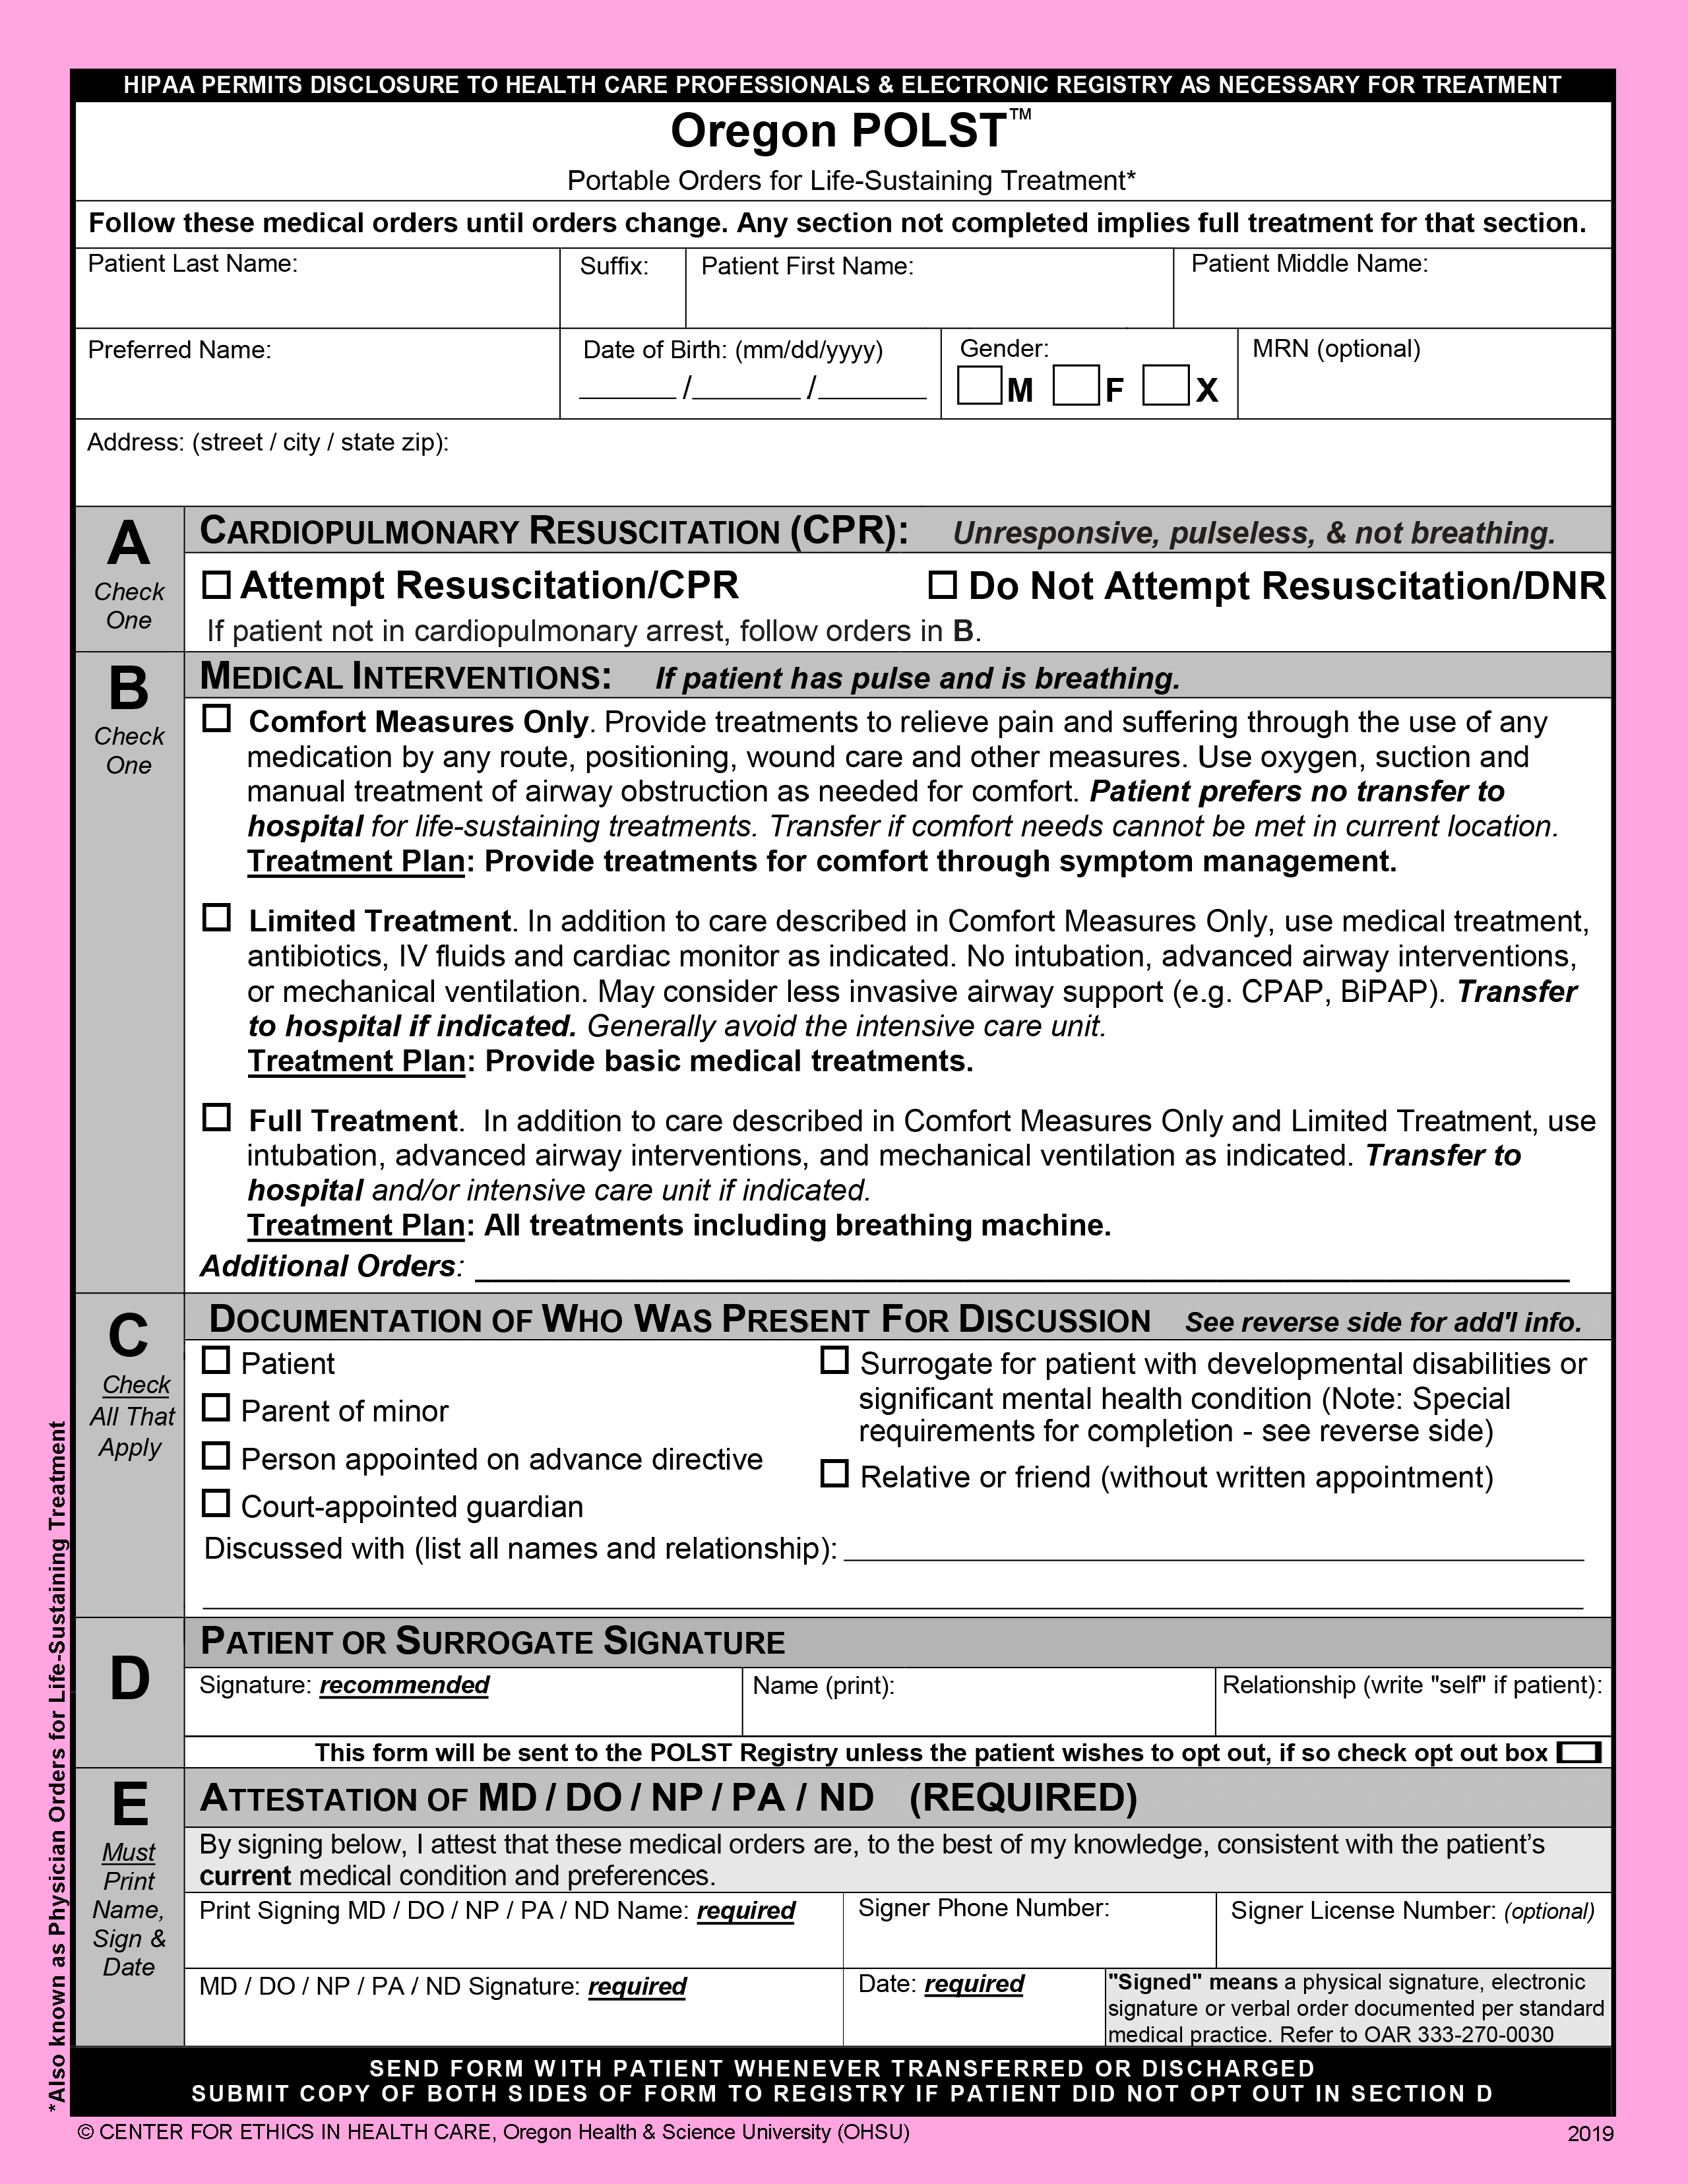 2019 Oregon POLST form front page only